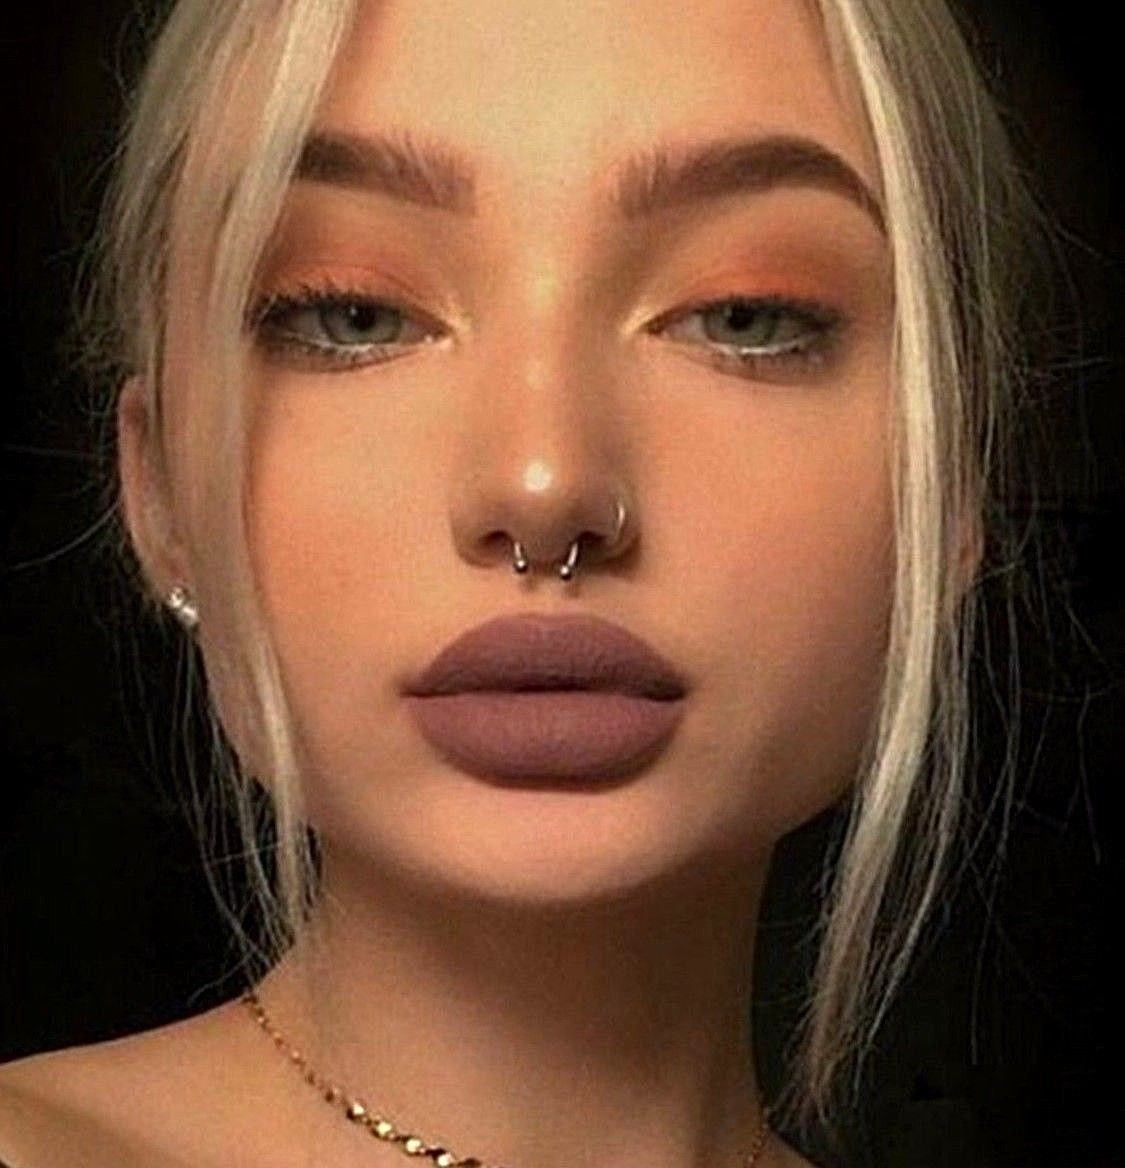 Closed up nose piercing scar  Silver Nose Ring Hoop Ear Septum Helix Cartilage Tragus Small Thin